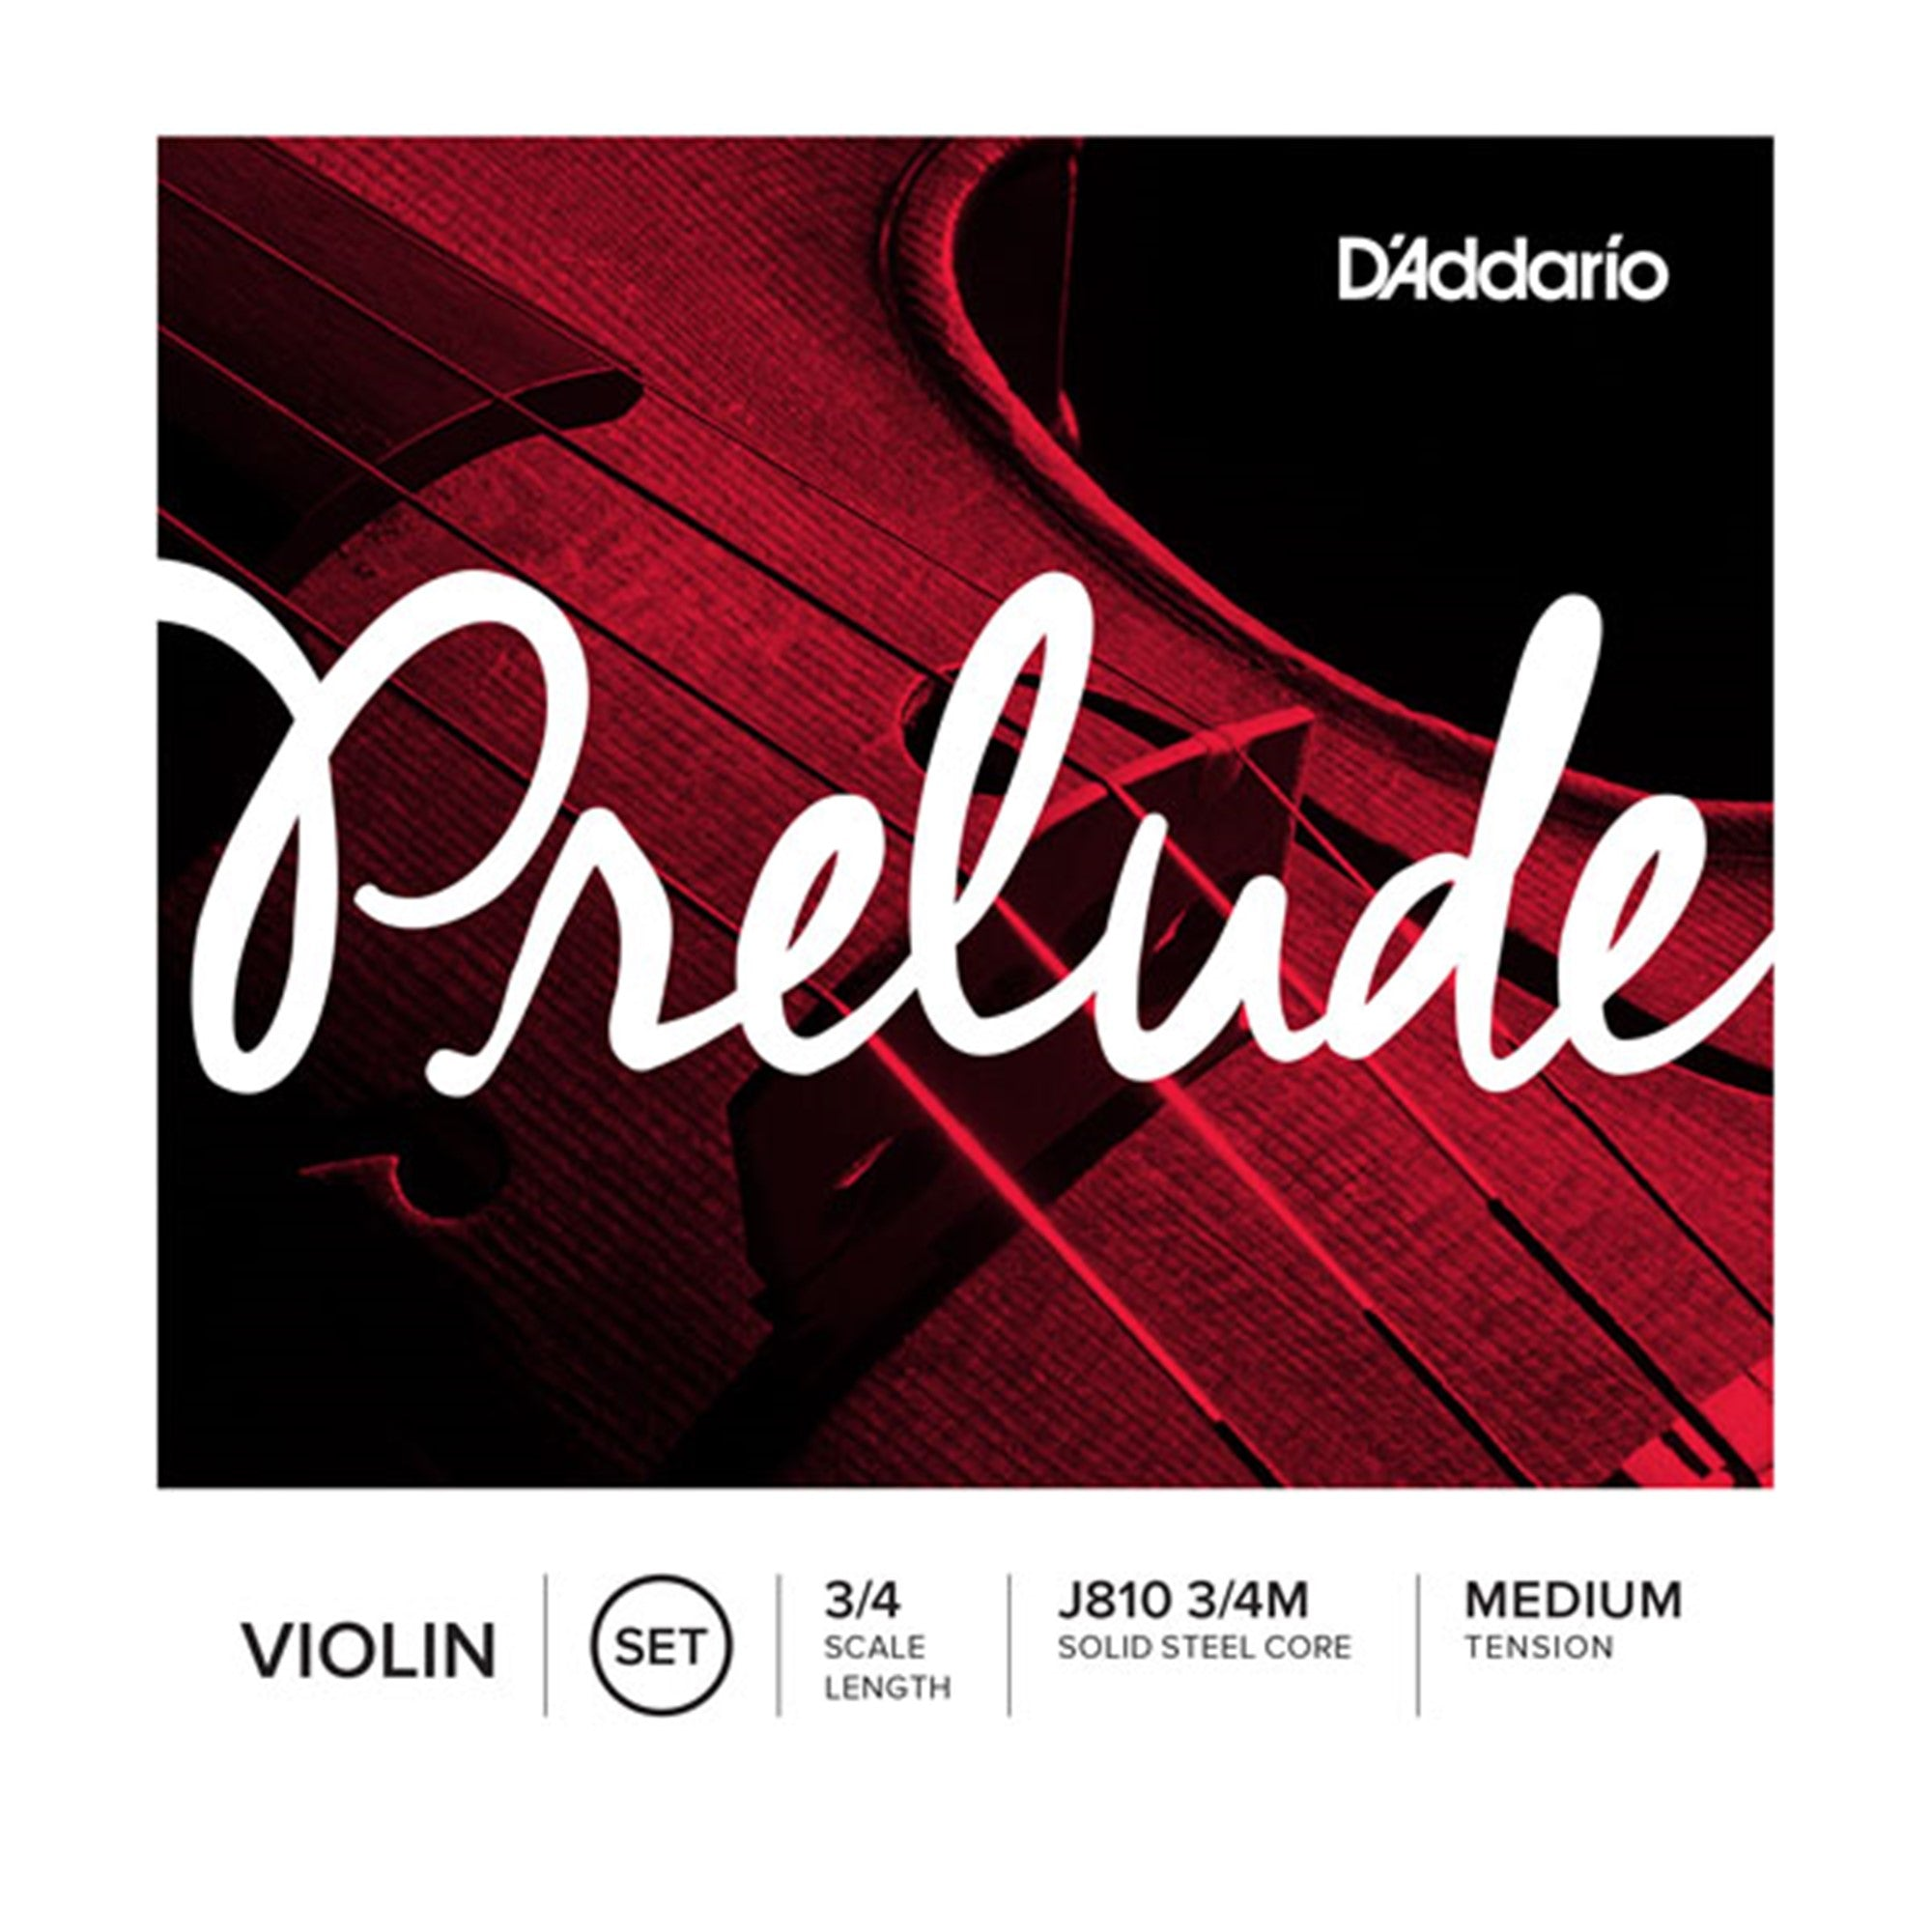 Addario Kaplan AMO Violin E String 4//4 -High Carbon Steel E ball end